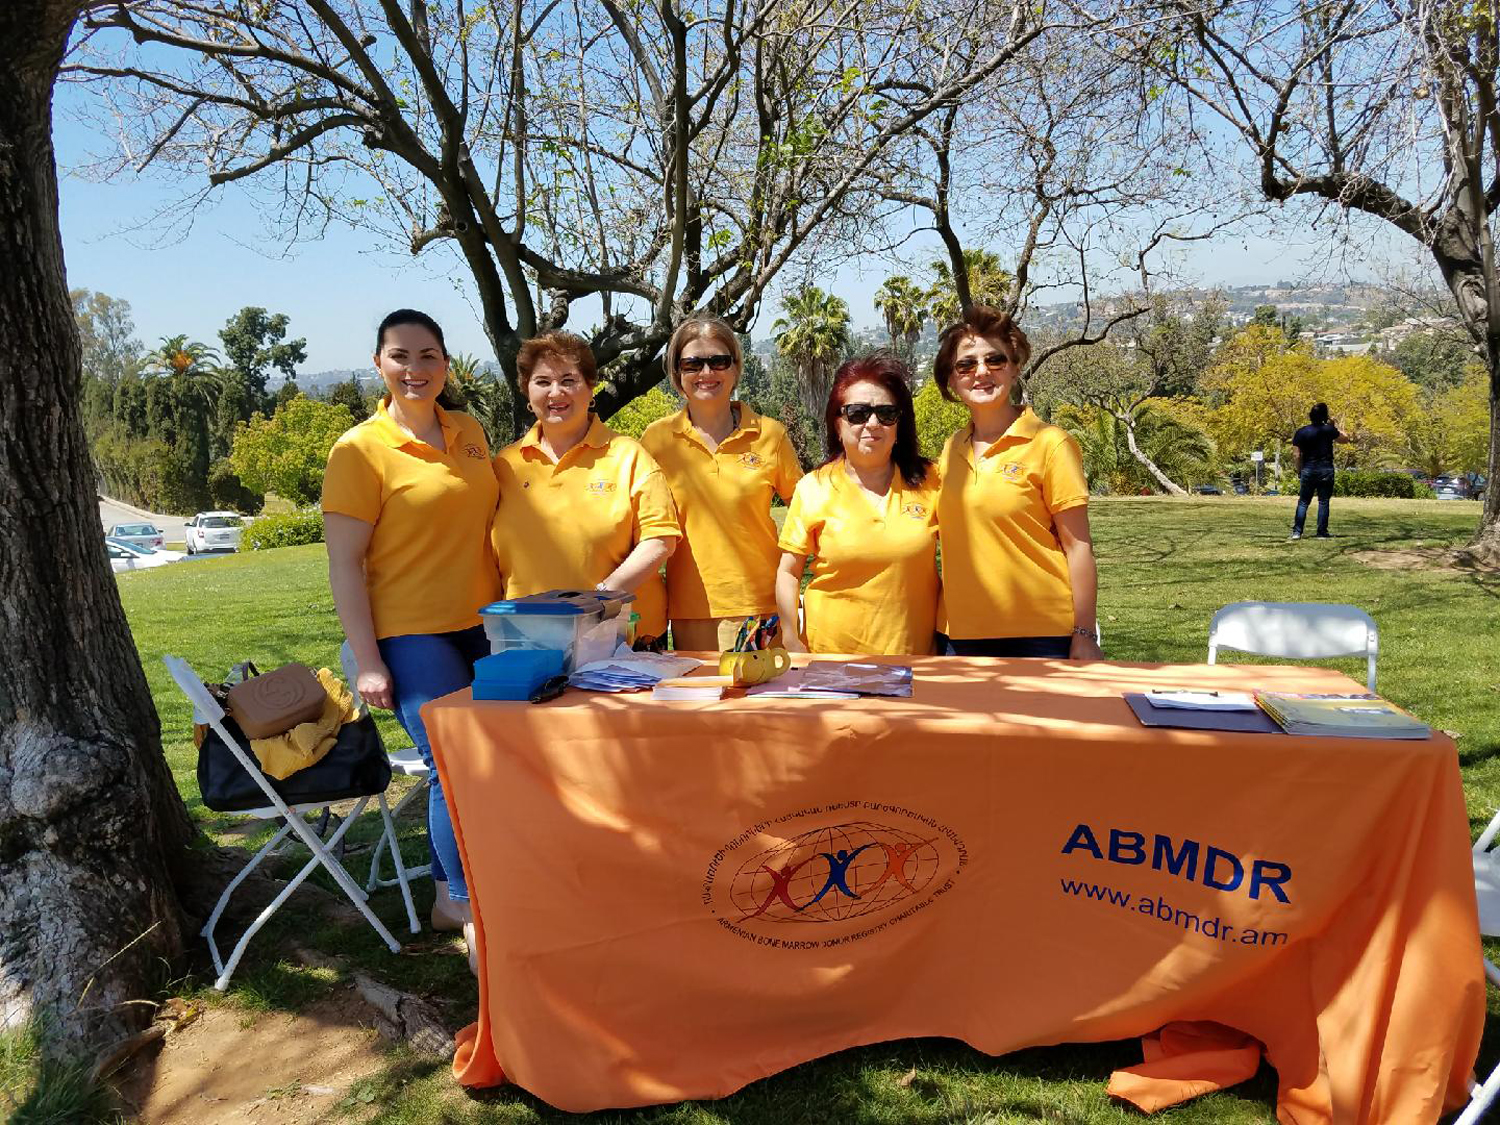 ABMDR Team on Grounds of Montebello Monument